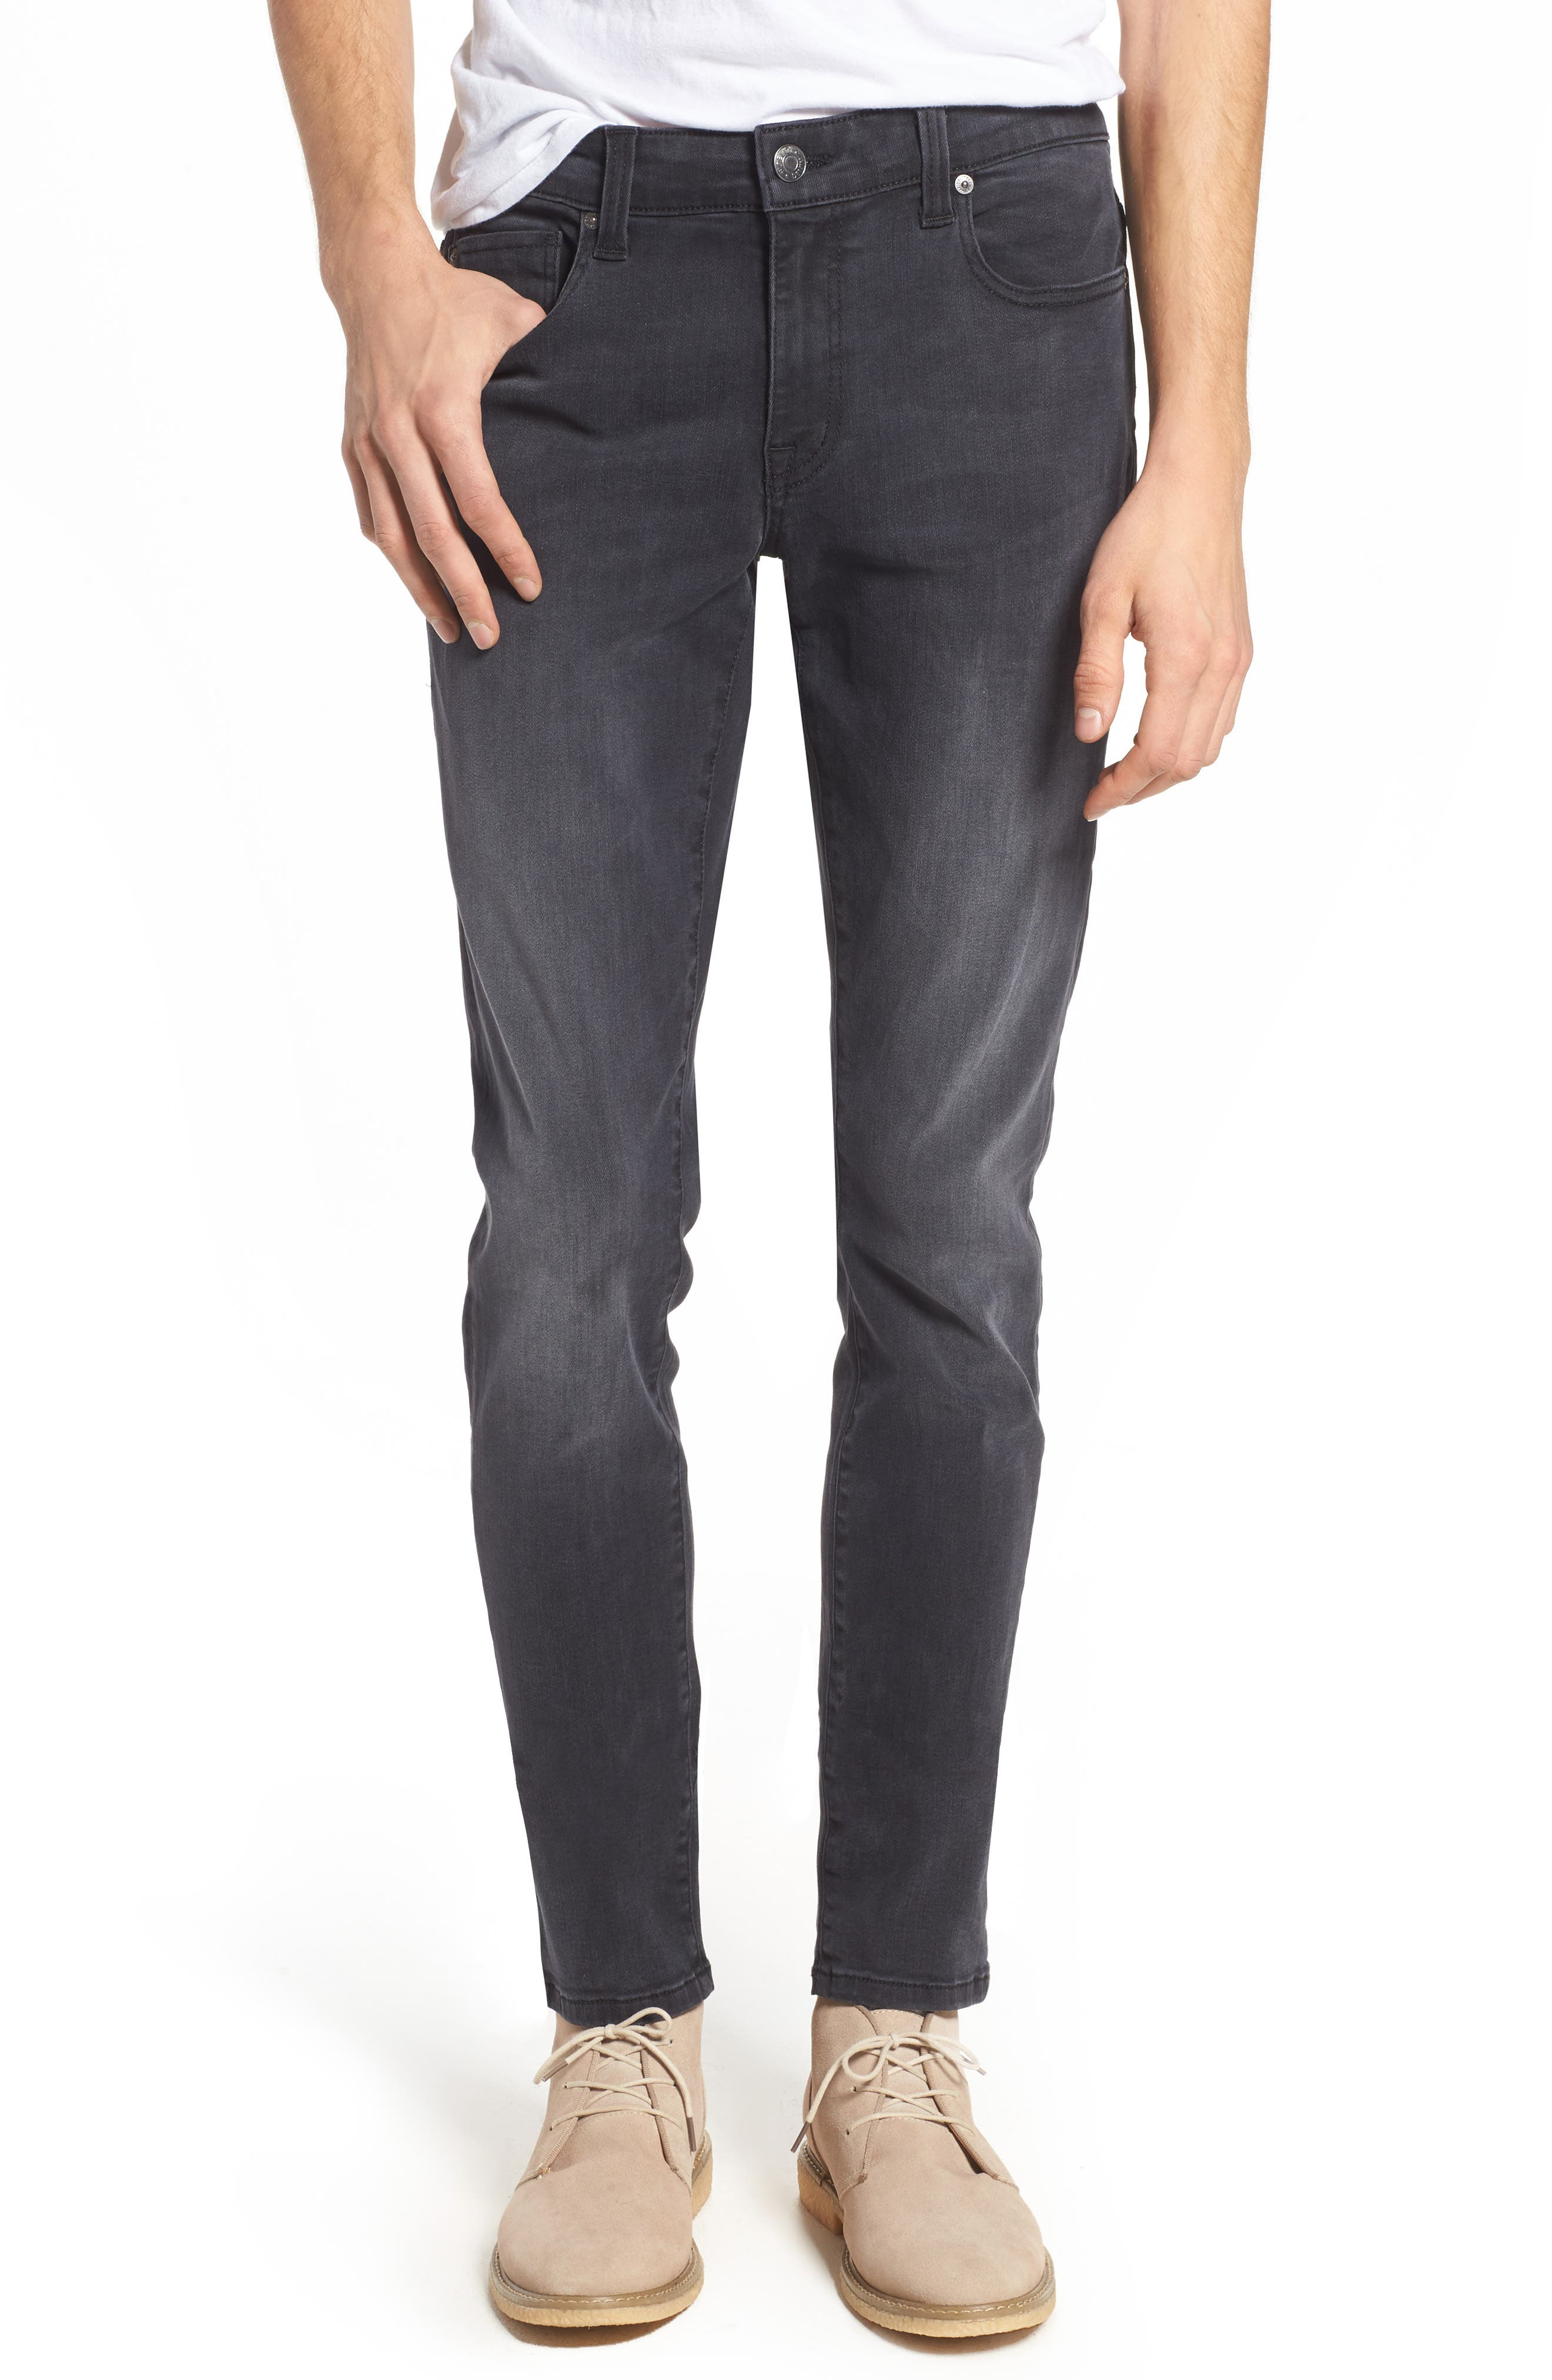 Vantage Skinny Fit Jeans,                         Main,                         color, Wolf Grey